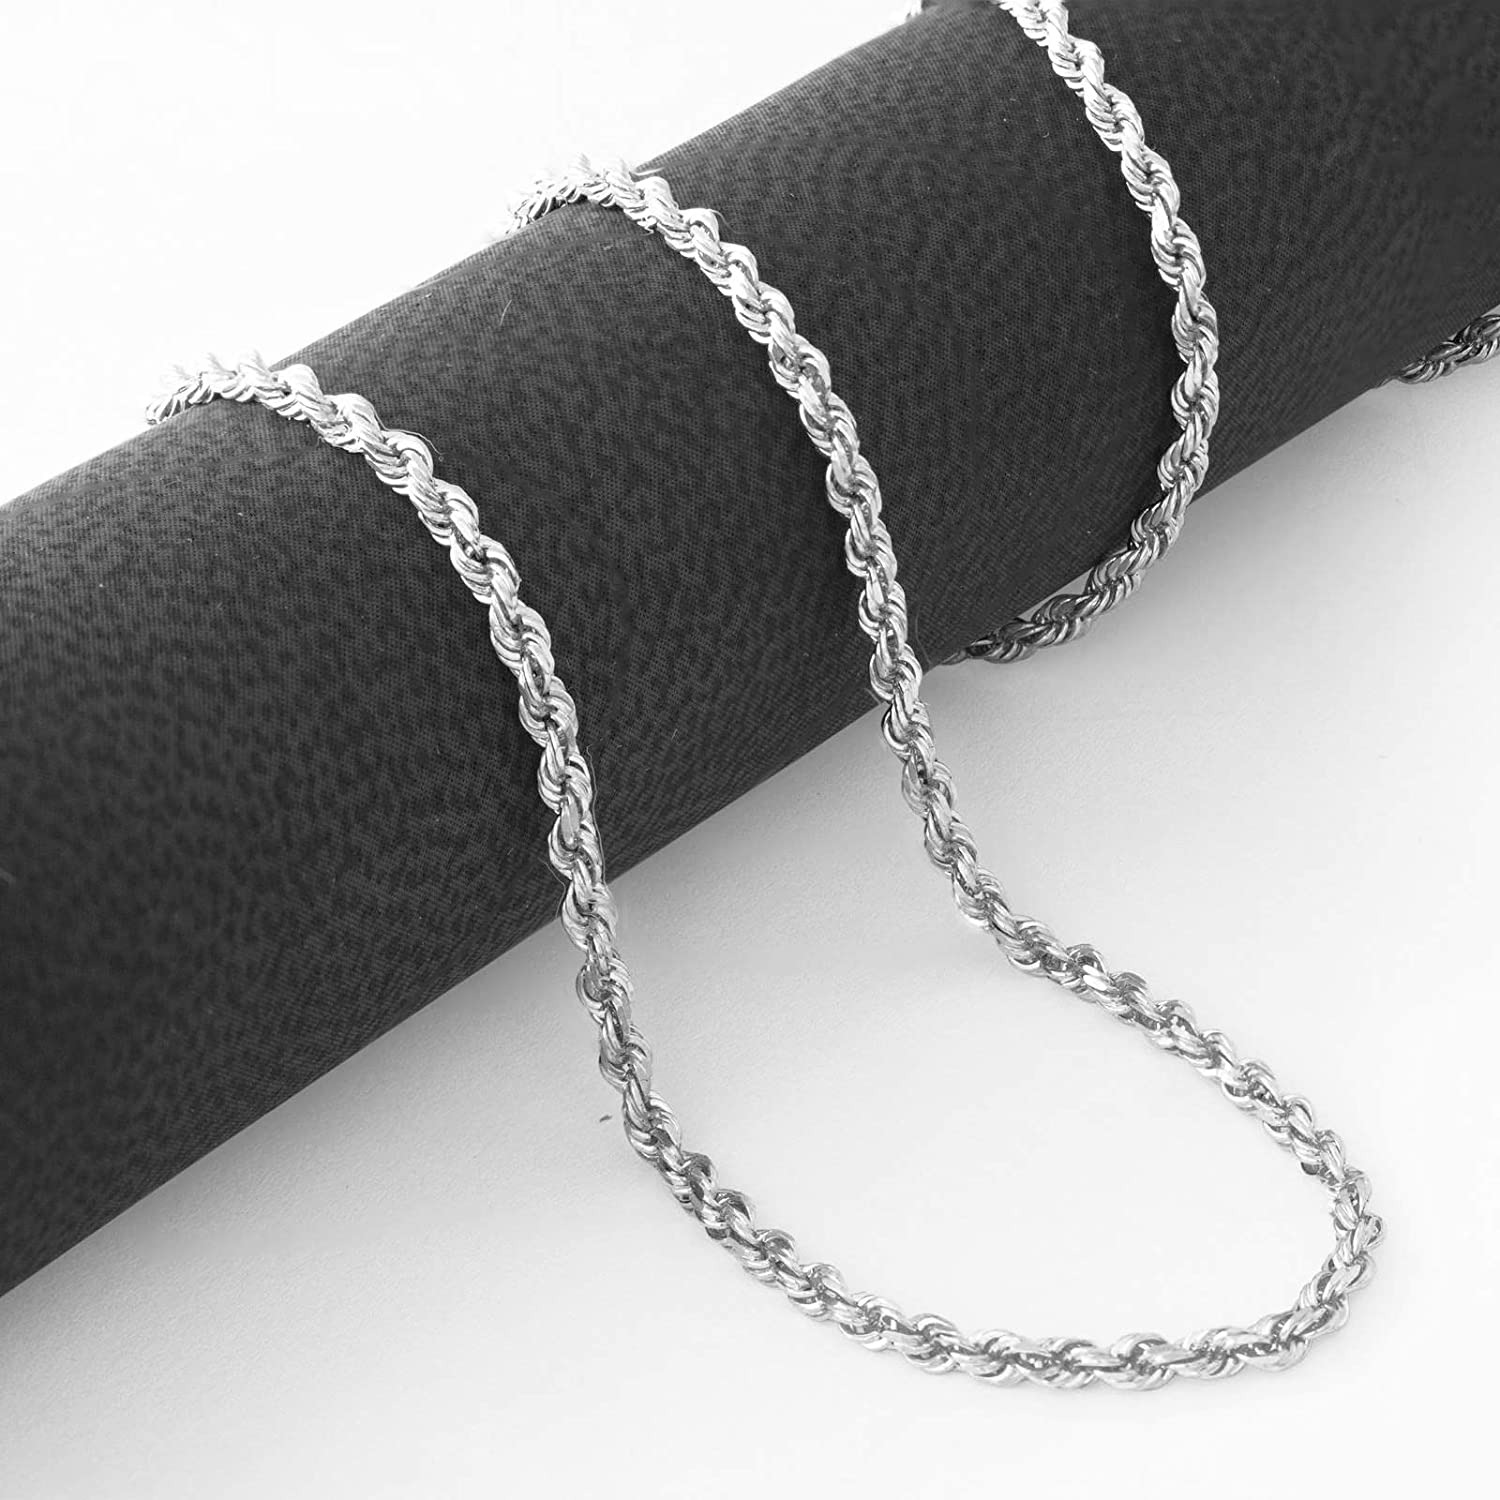 Nuragold 10k White Gold 1.8mm Rope Chain Diamond Cut Pendant Necklace, Womens Mens Jewelry 14